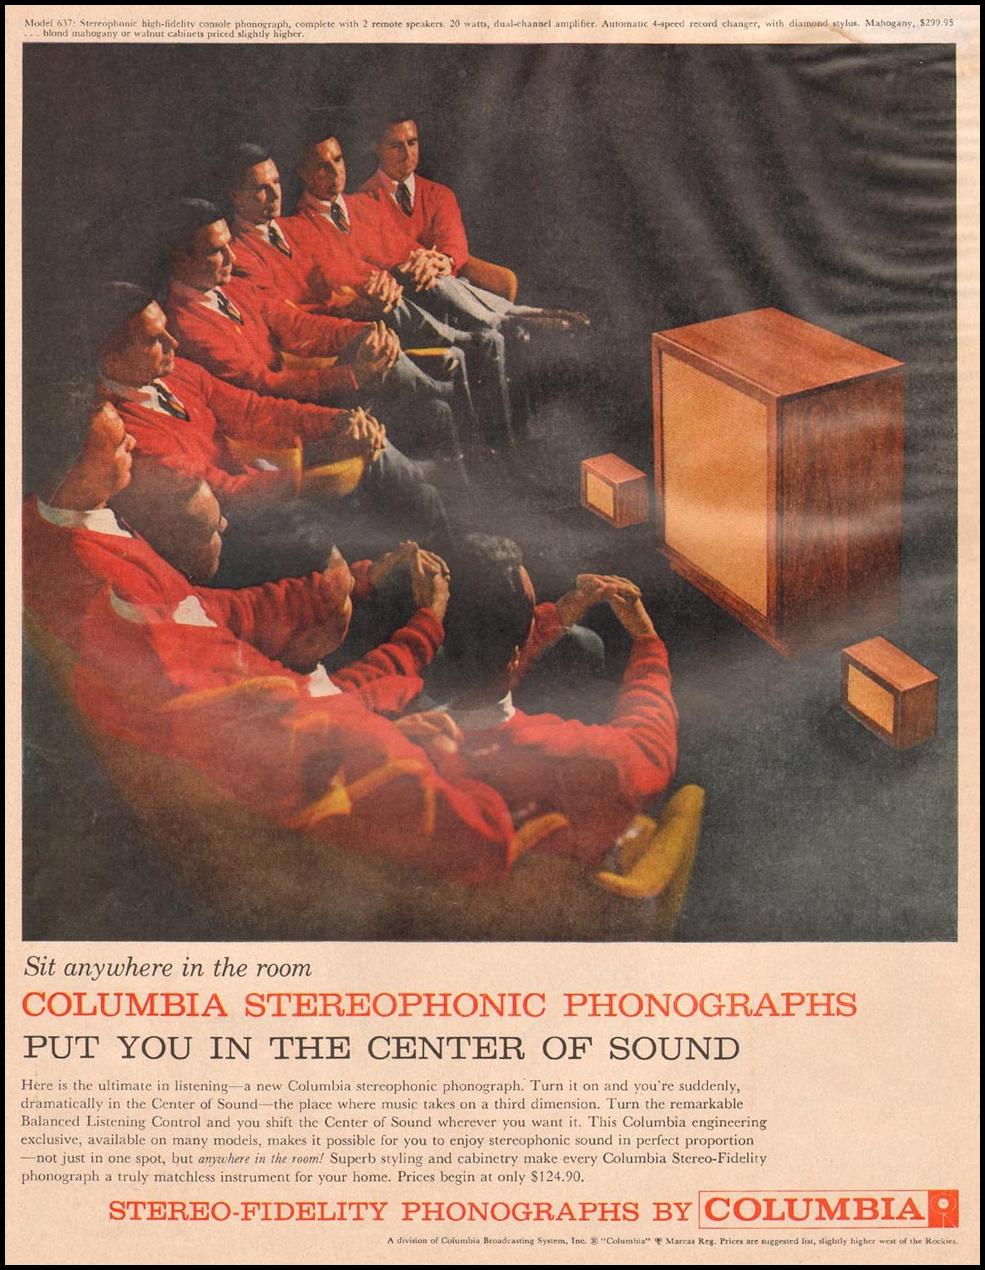 COLUMBIA STEREOPHONIC PHONOGRAPHS LIFE 11/24/1957